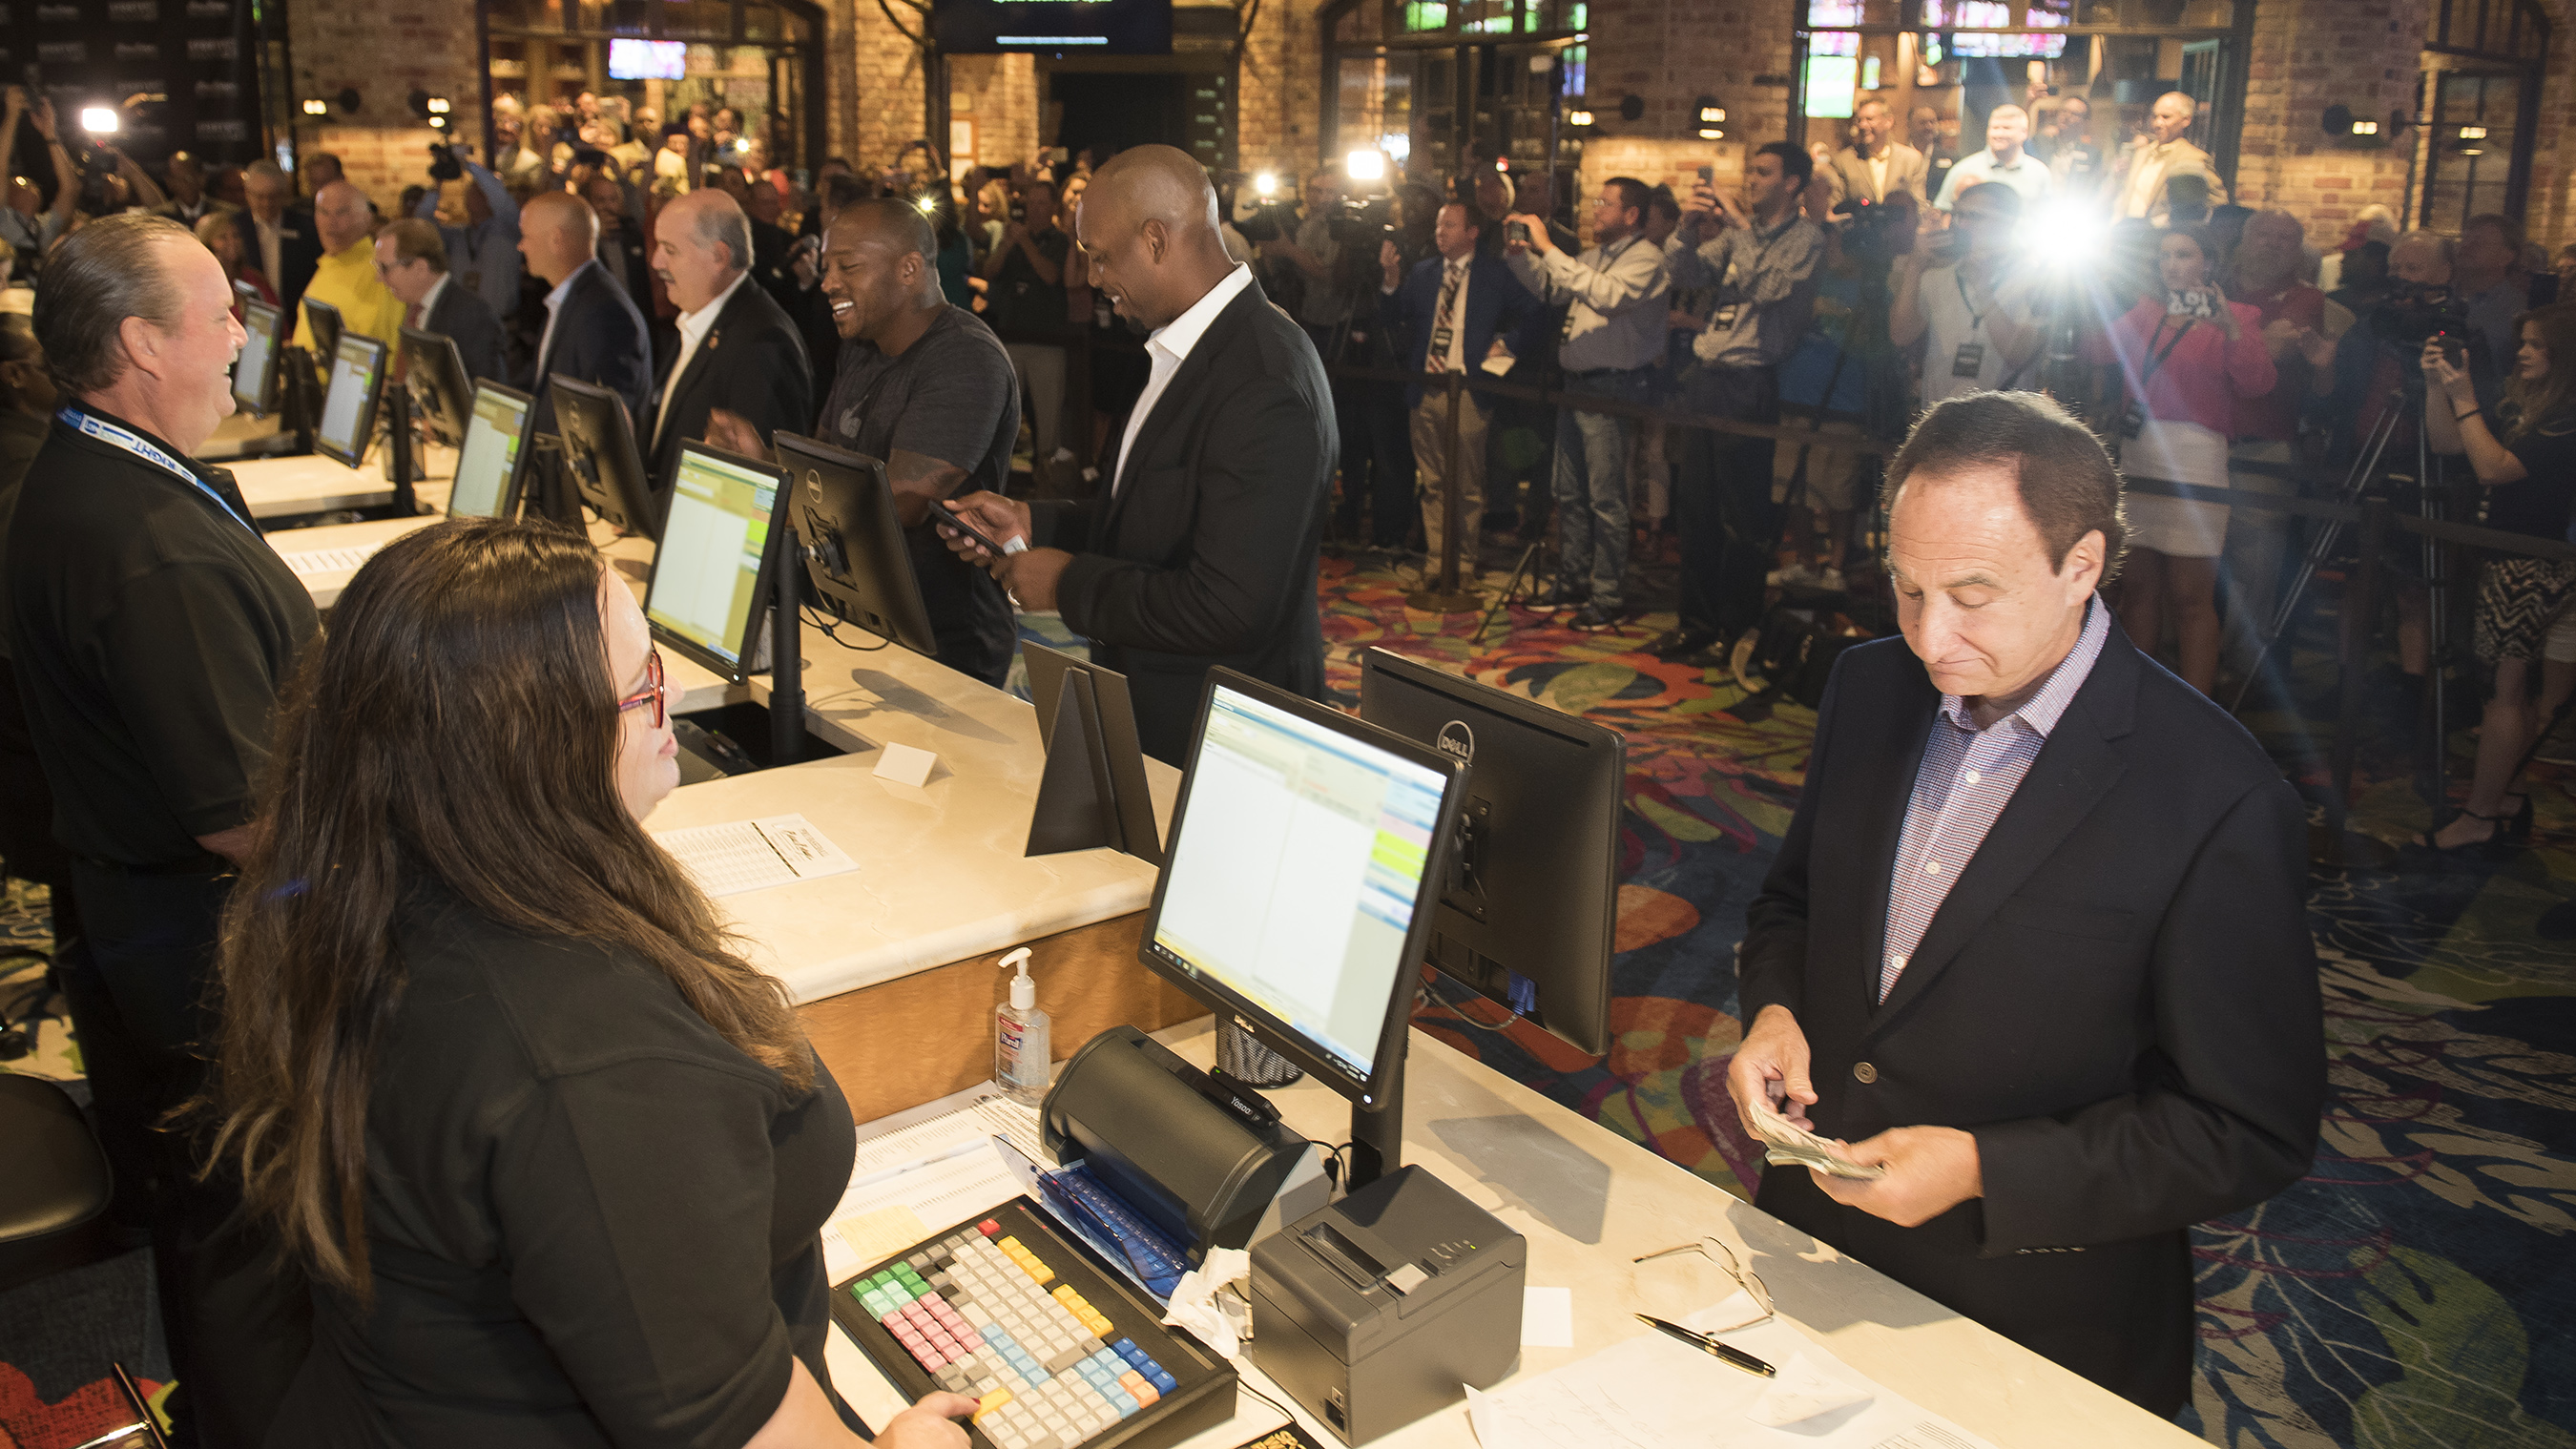 Legendary oddsmaker Danny Sheridan, NFL Robert Royal  and NFL's Willis McGahee among first to place sports bet at Beau Rivage Resort in Biloxi, MS